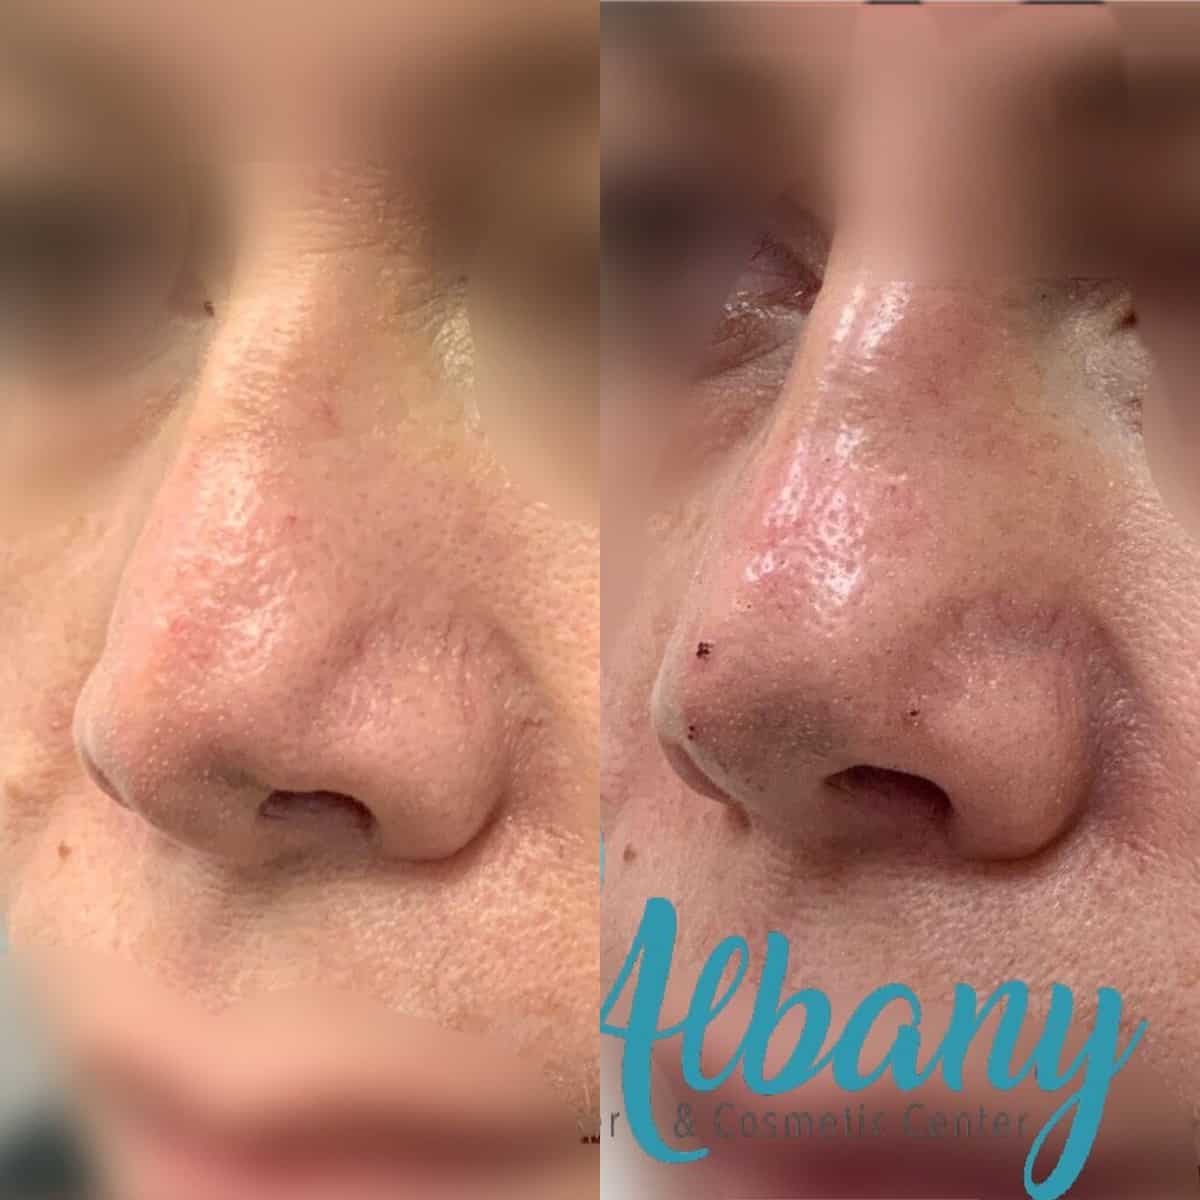 Nose job fillers Edmonton